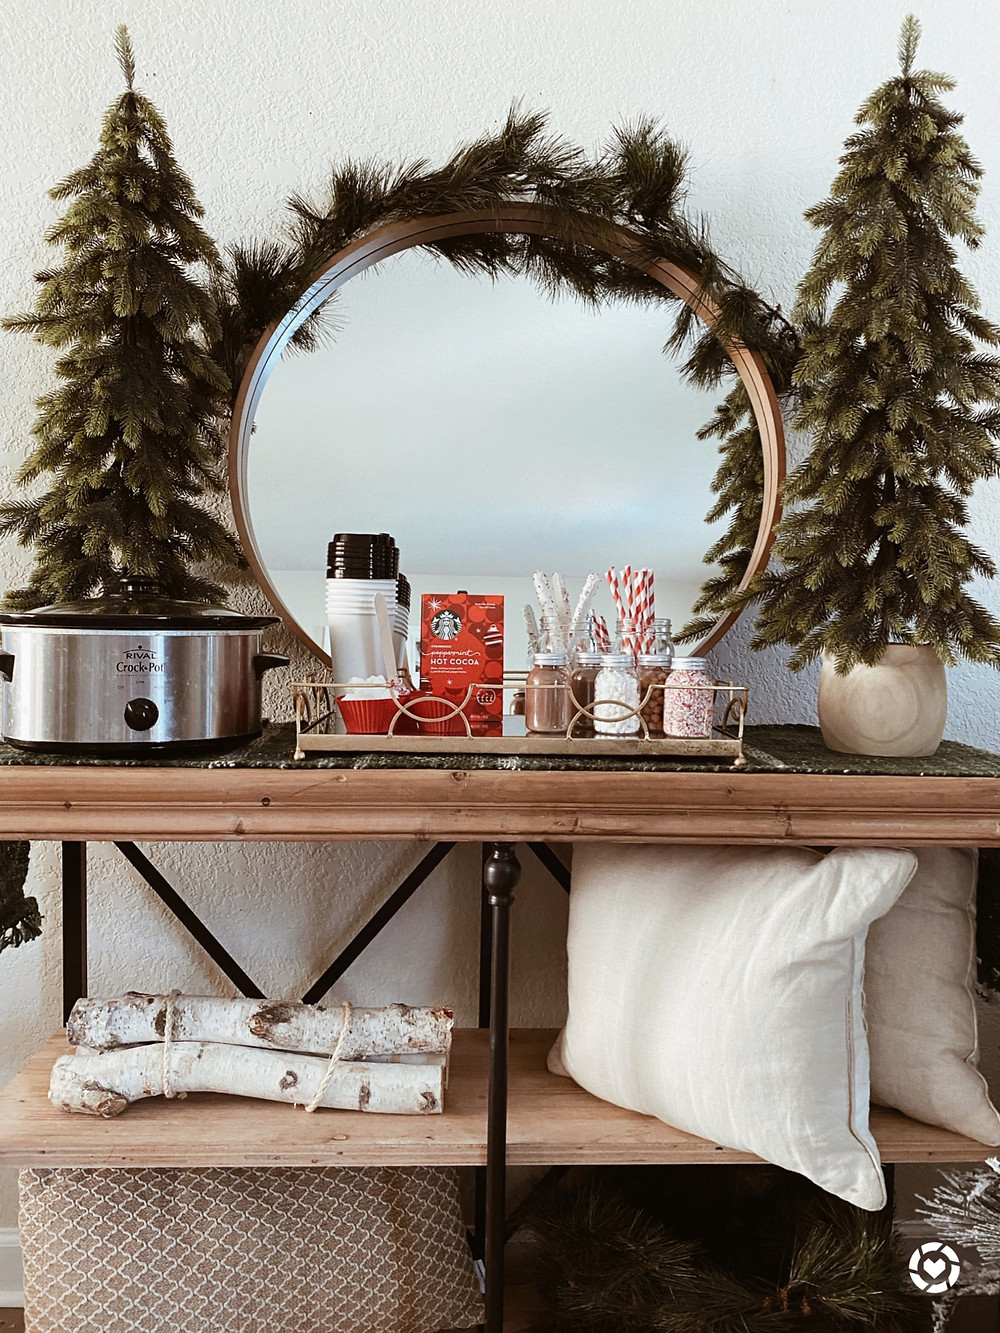 Create a cozy cocoa bar for Christmas with the family.